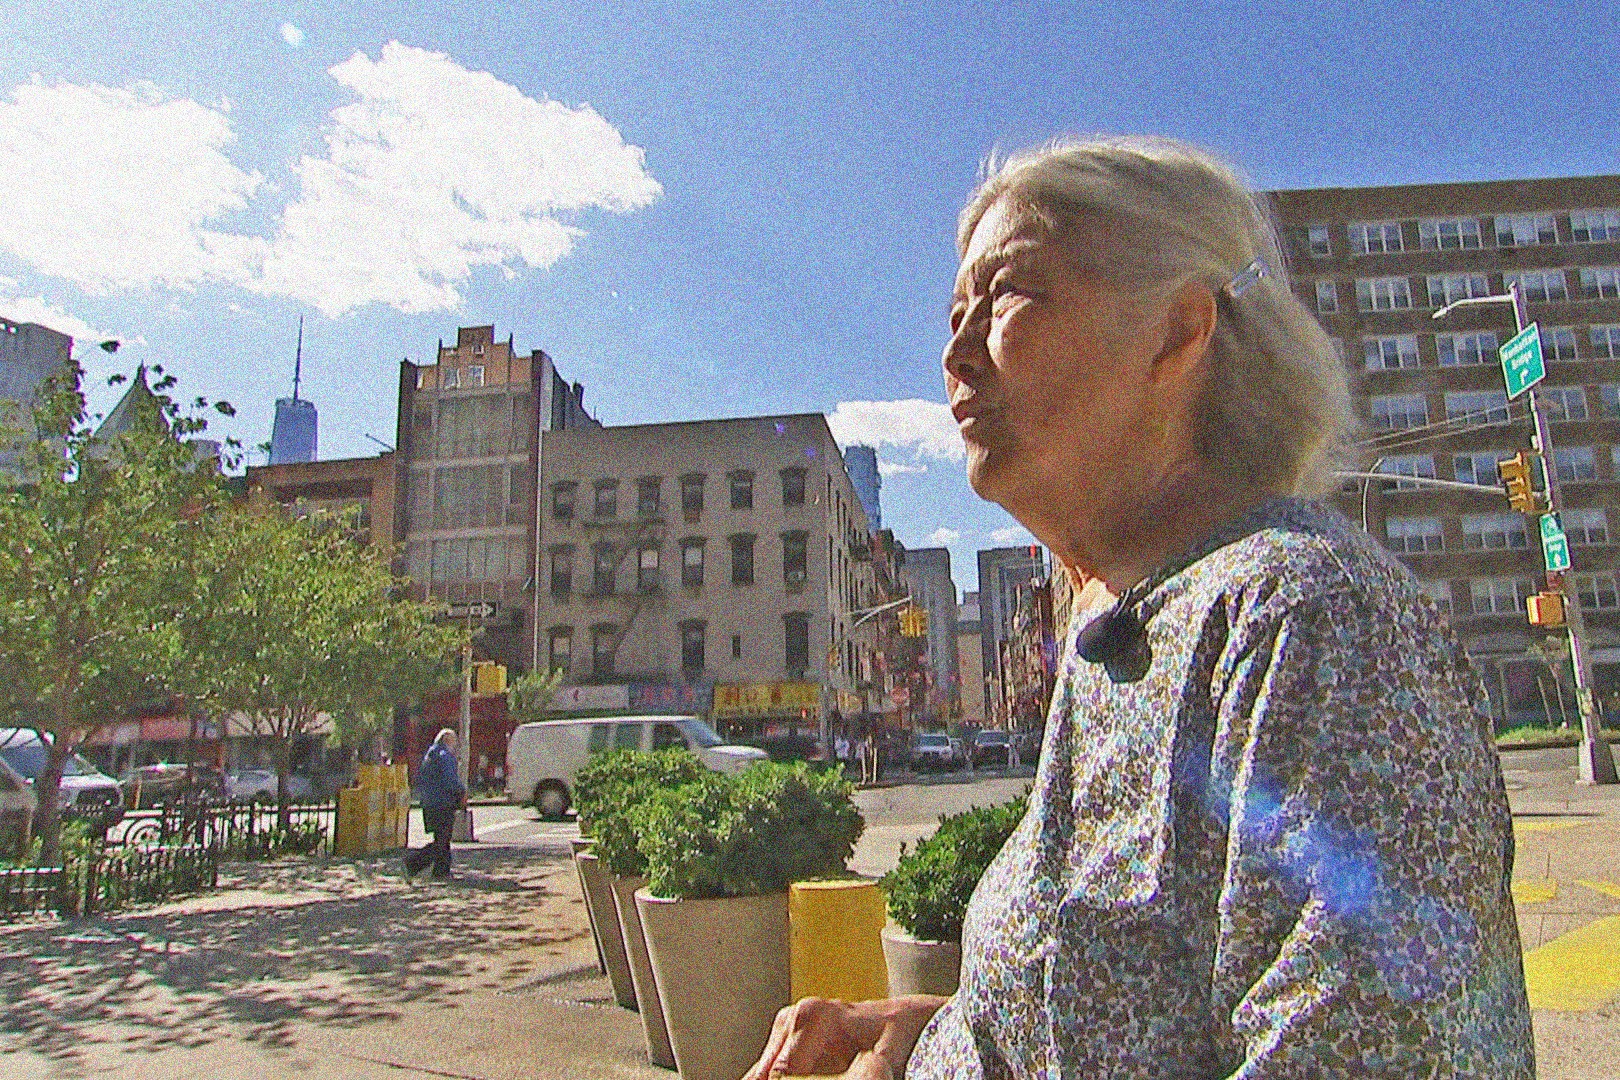 On 9/11, Chinatown residents watched the towers fall. Some are still recovering.